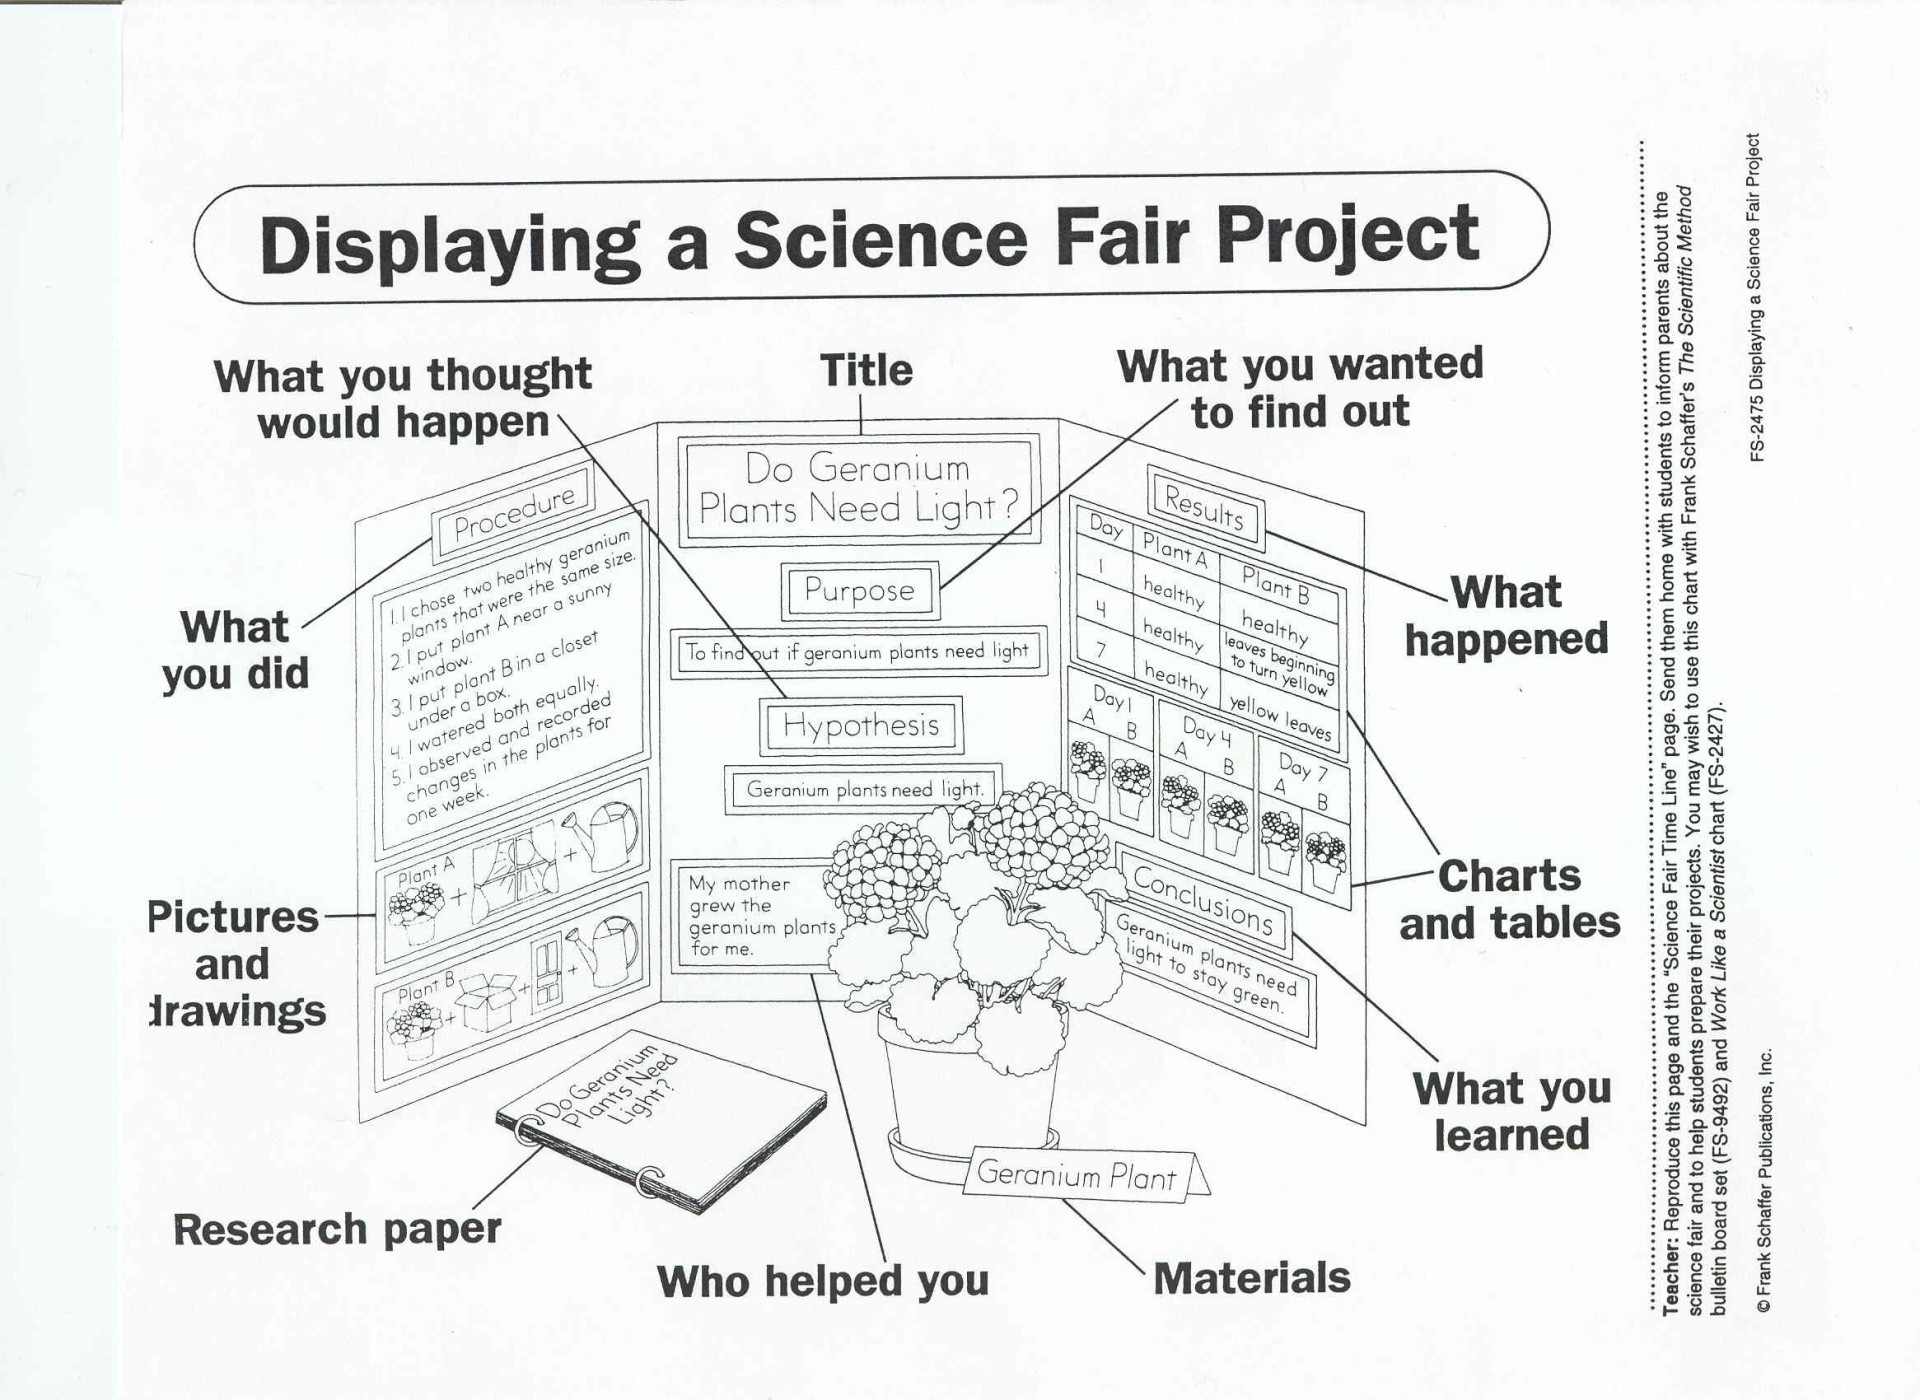 014 Best Ideas Of 4th Grade Science Project Research Paper On Fair Mrlman S Class Middle School Frightening Template 1920